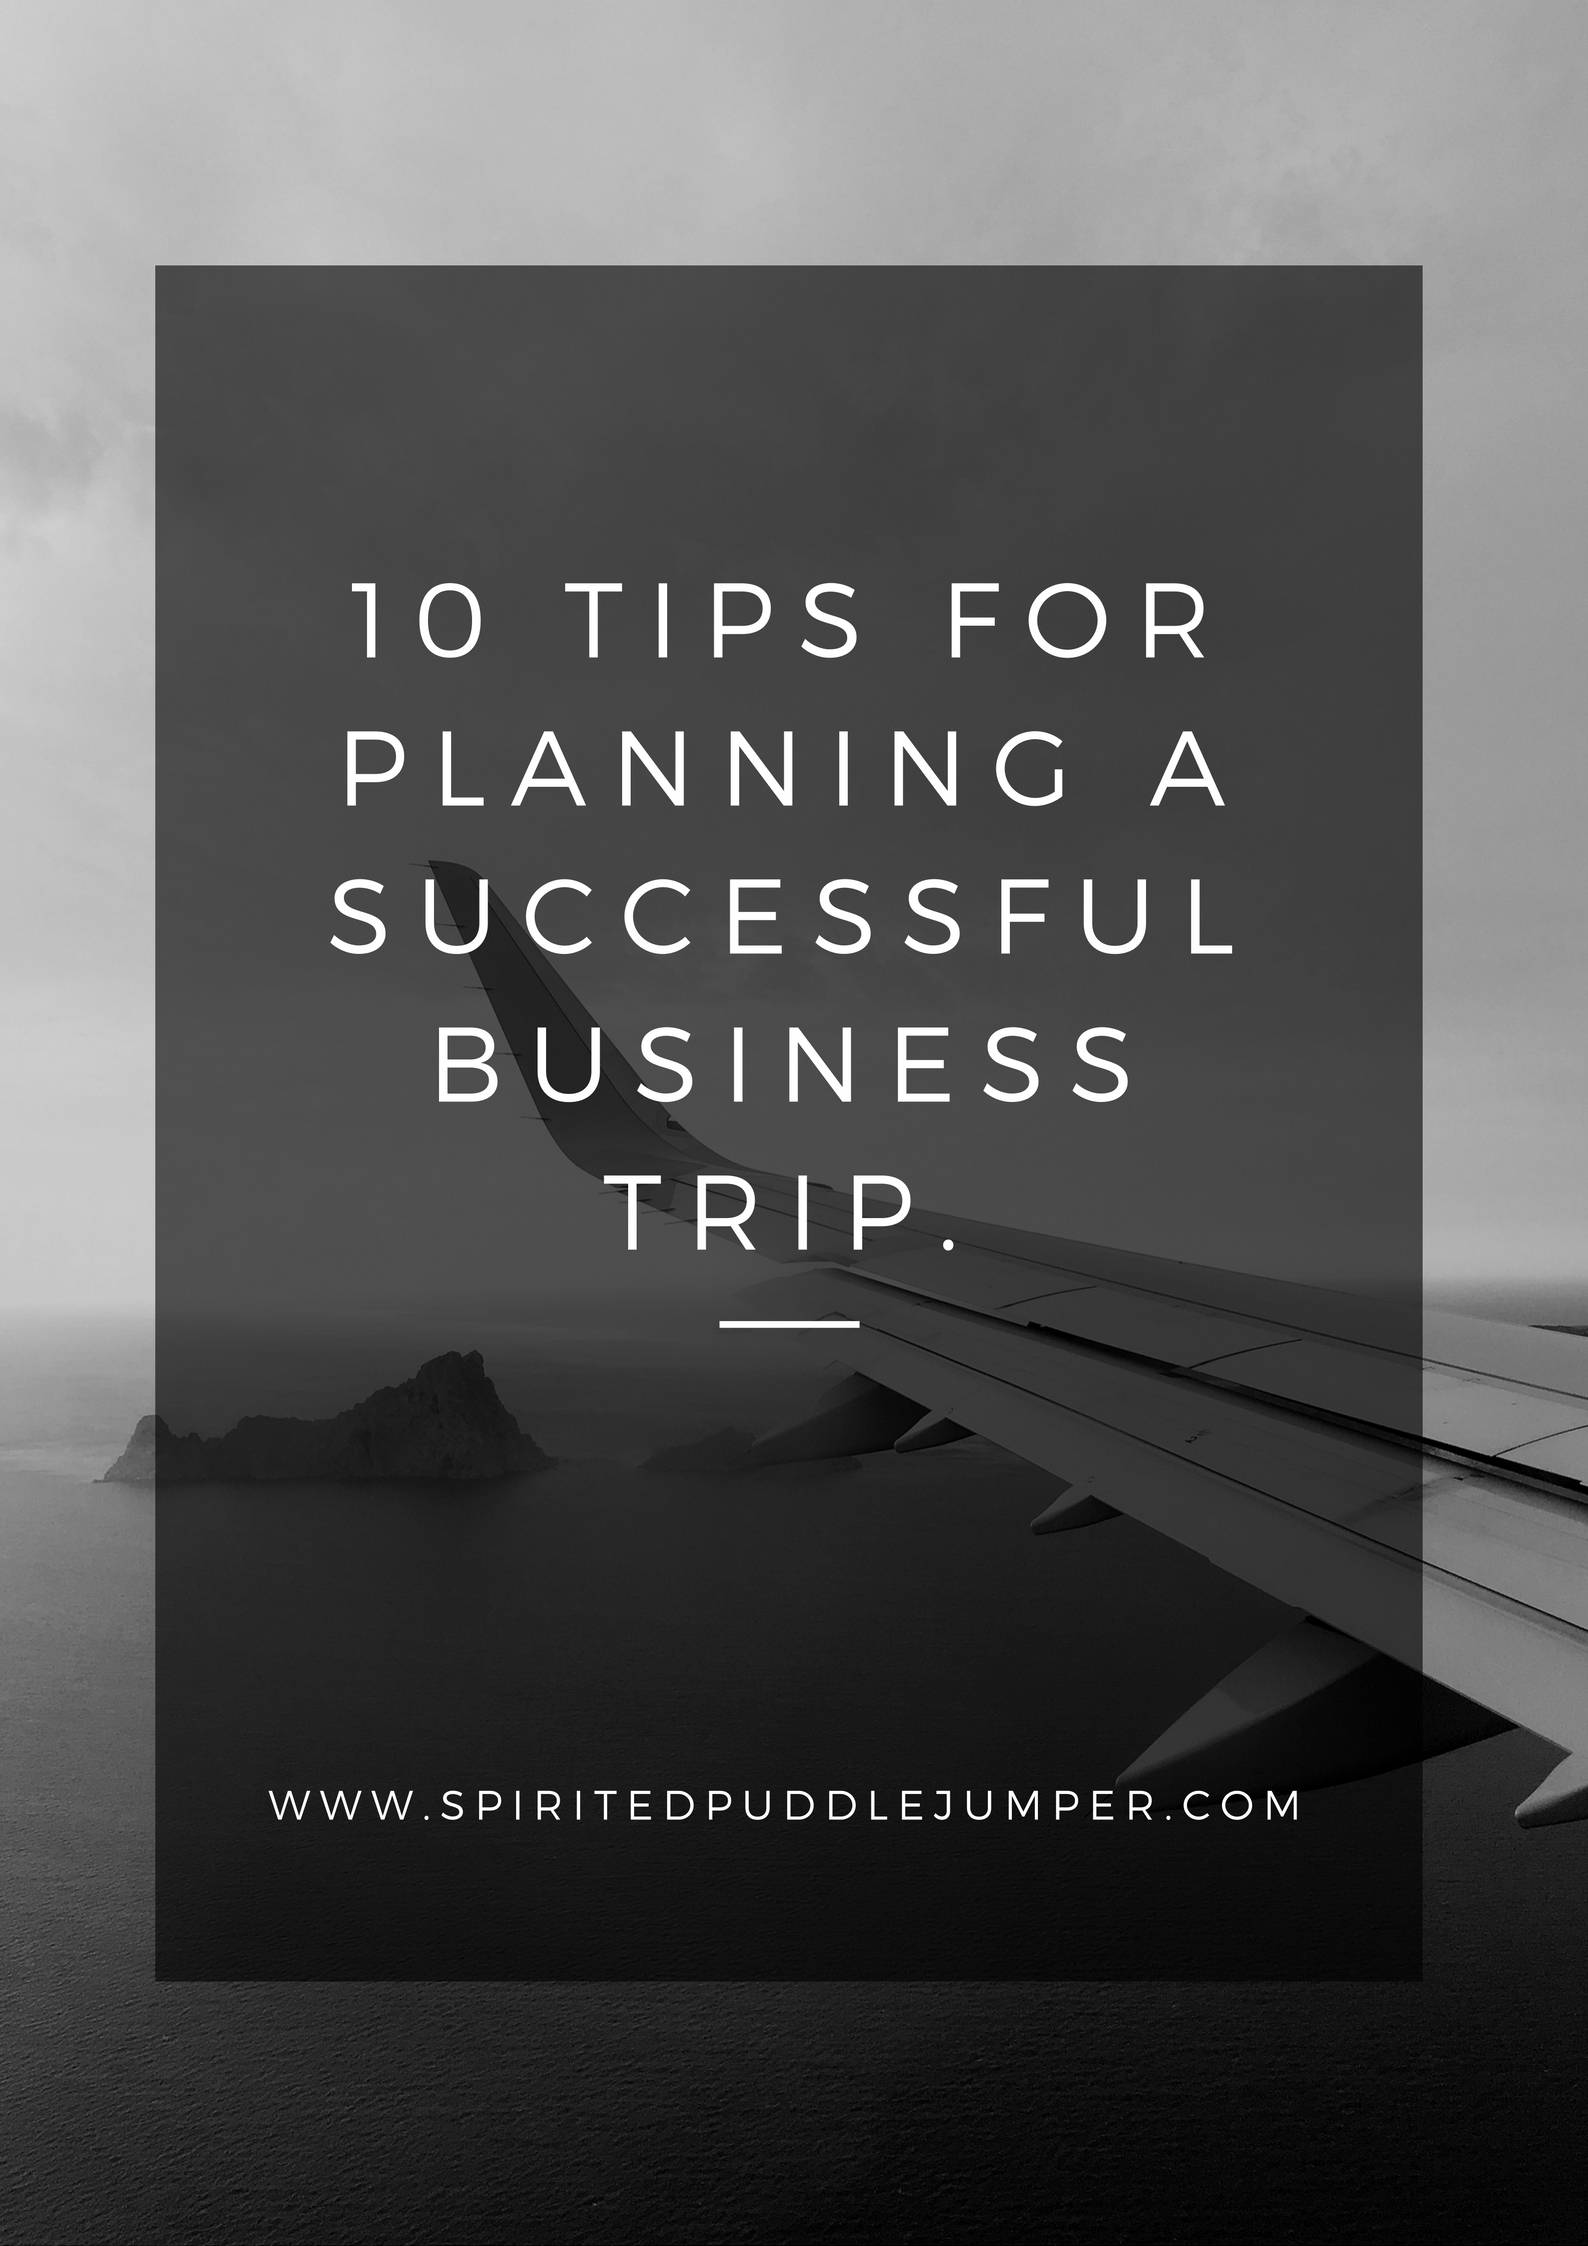 10 Tips for Planning a Successful Business Trip